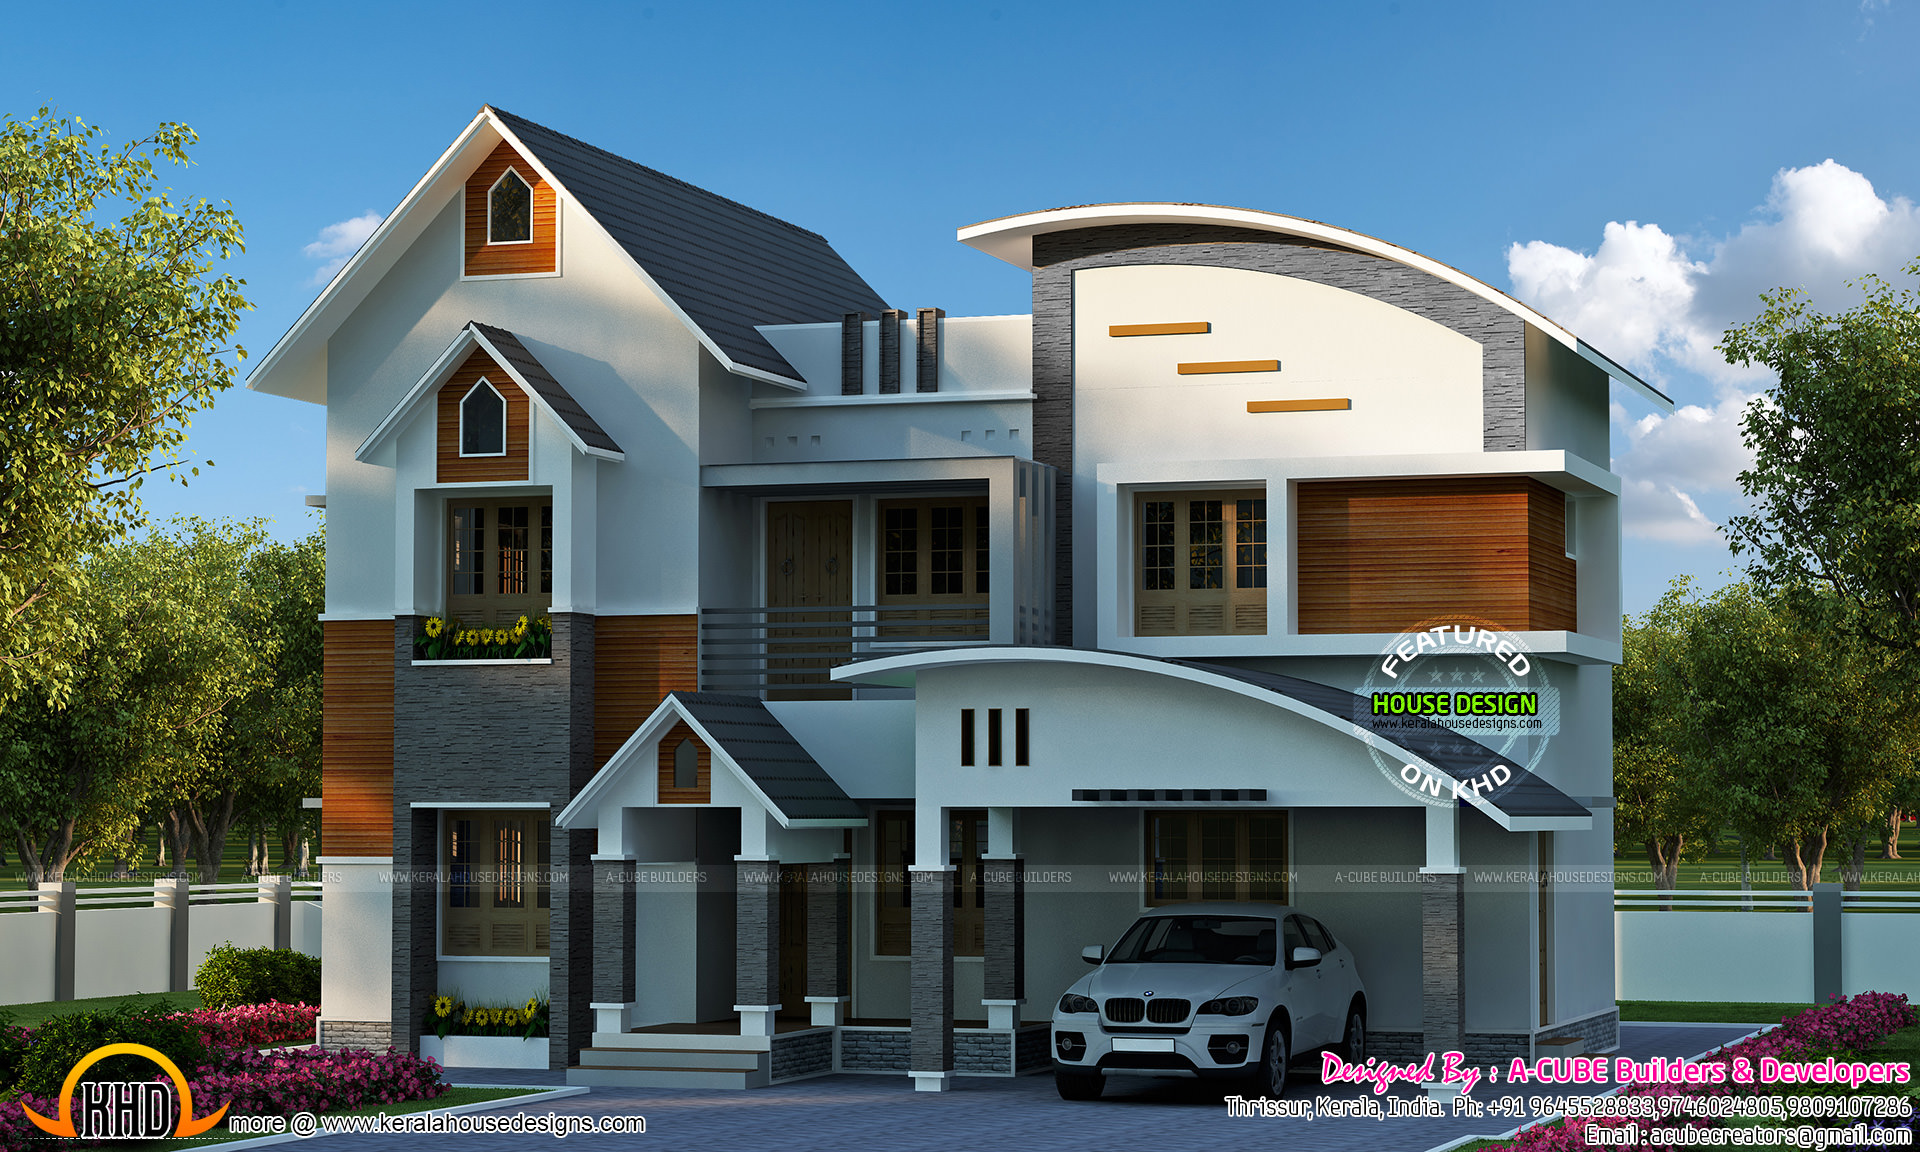 Curved Roofs Designs & Spectacular Curved Metal Roof